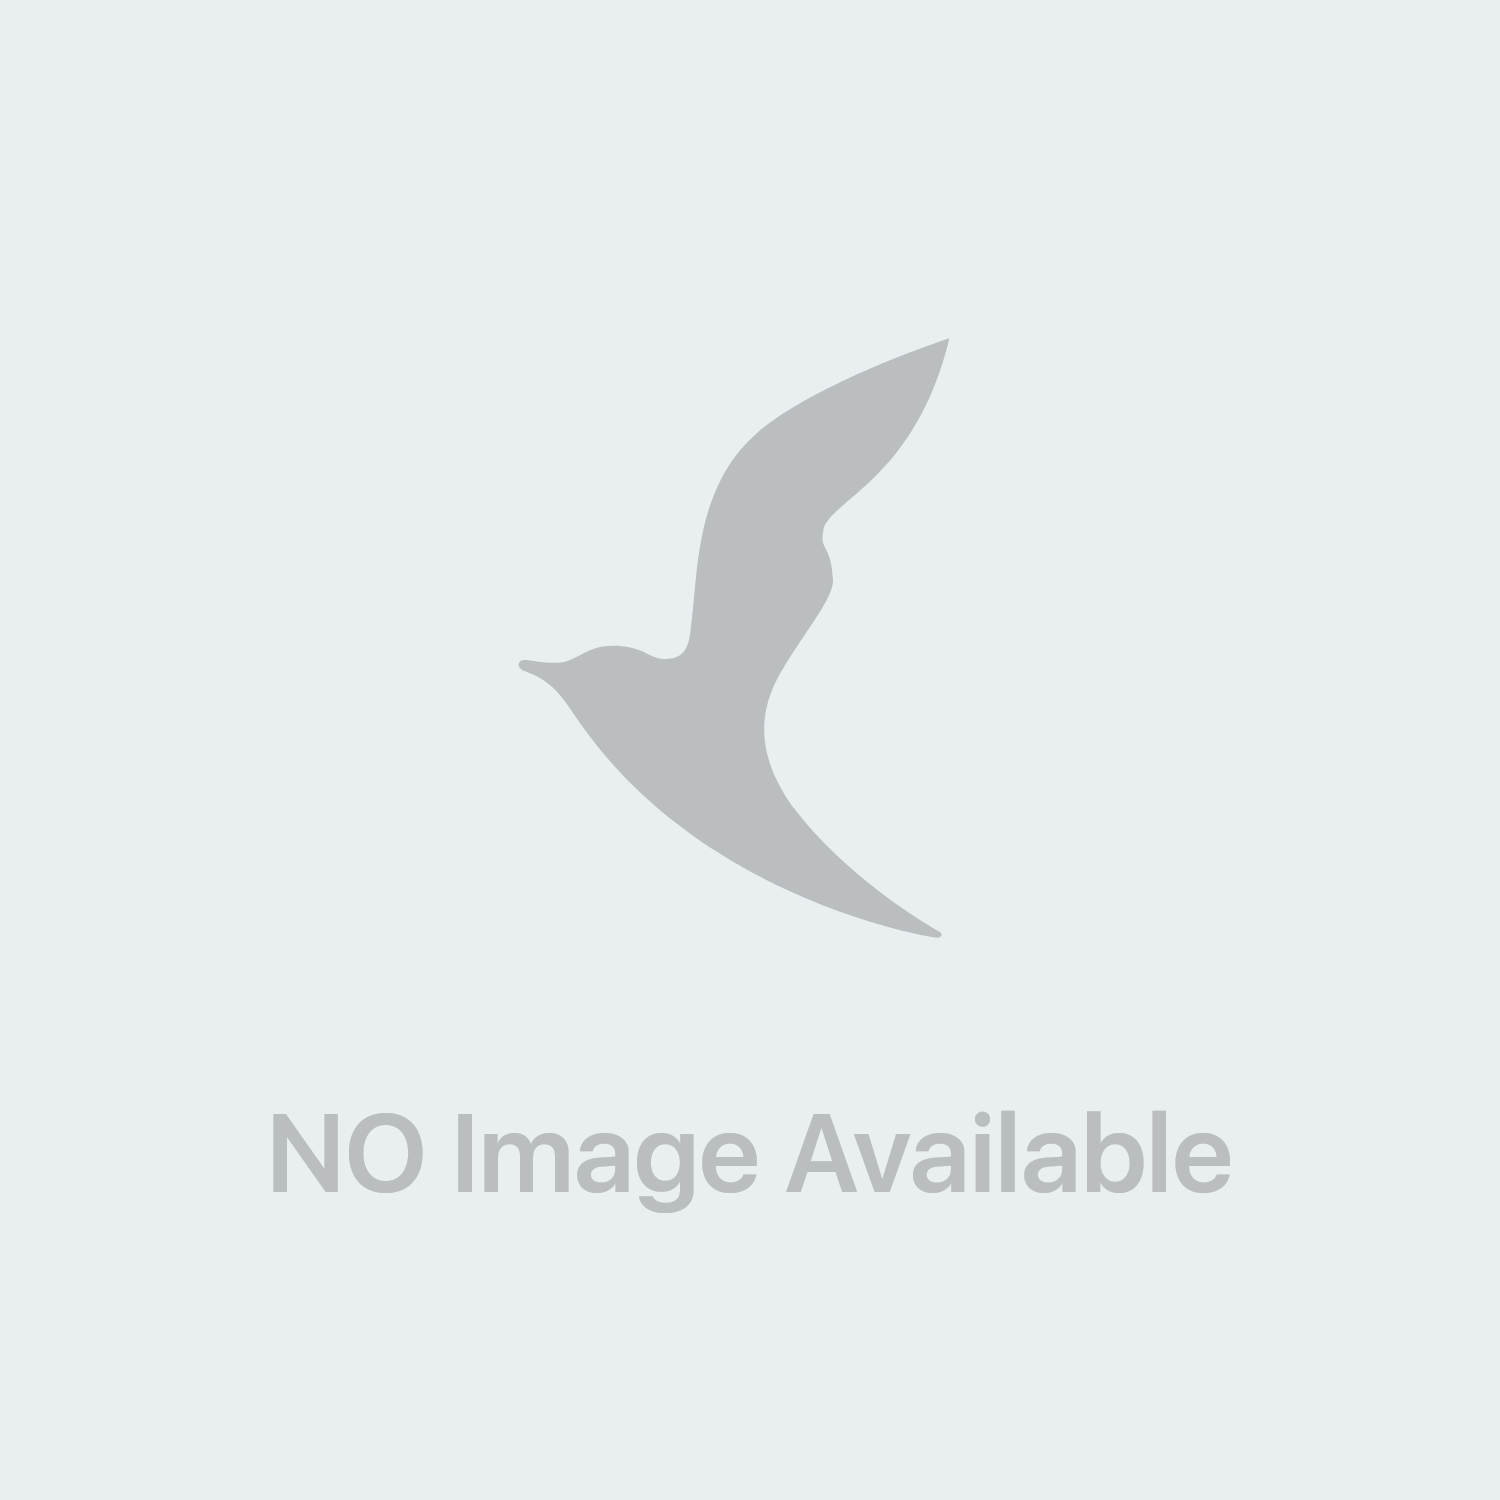 Katabios 60+ Integratore Multivitaminico 20 Compresse